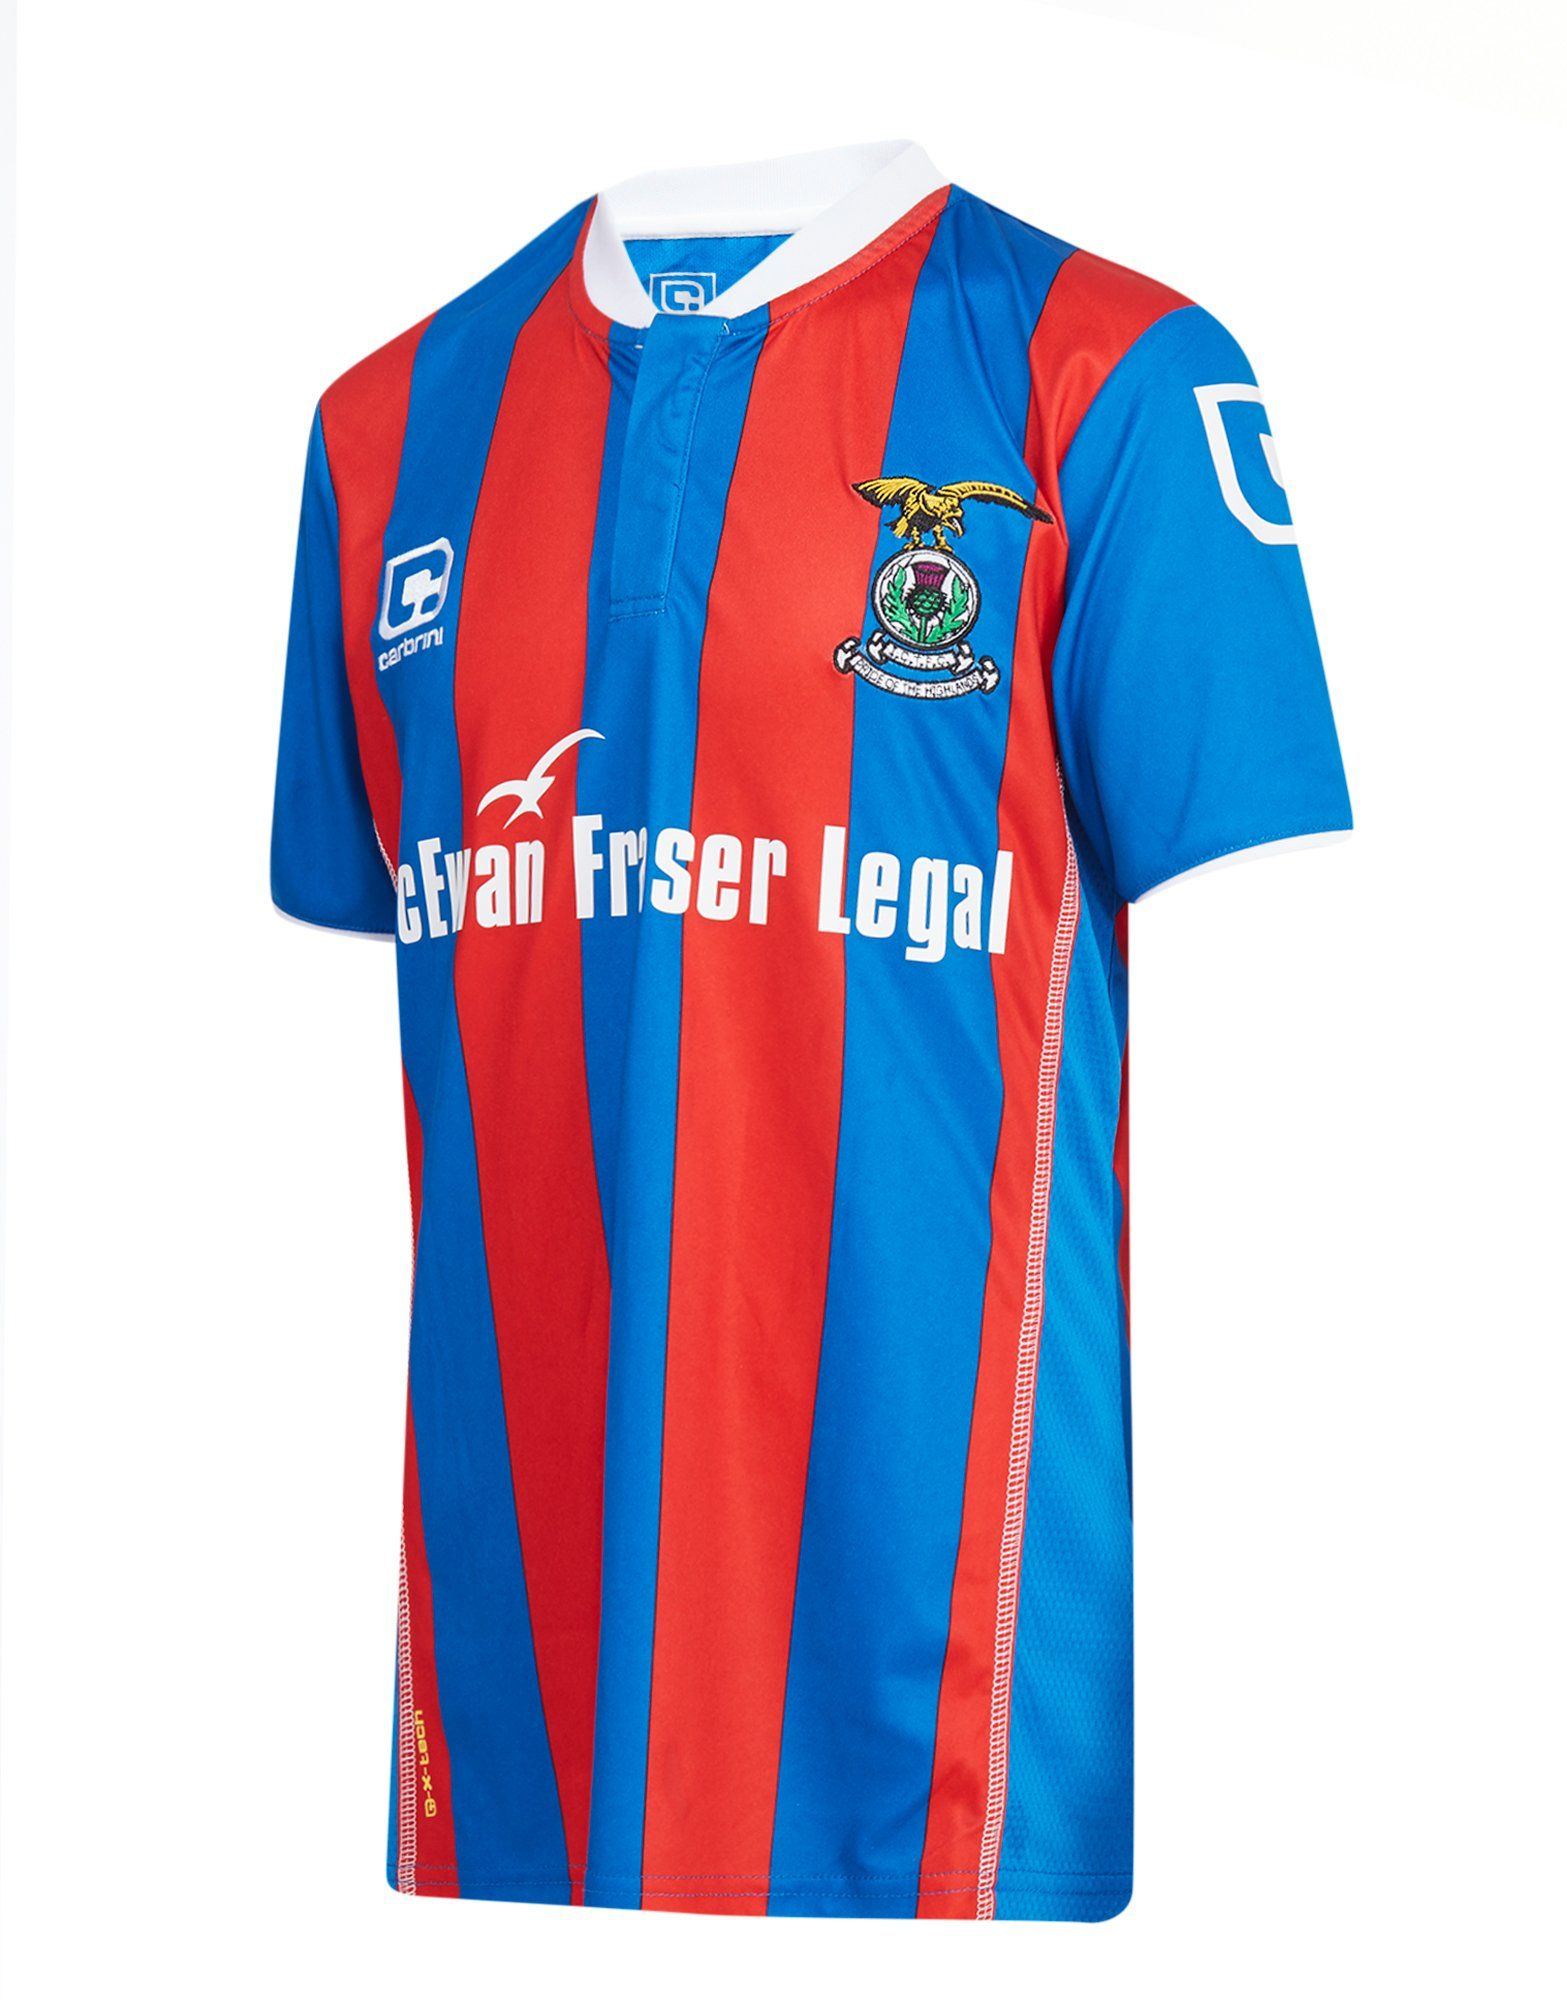 Carbrini Inverness CT 2016/17 Home Women's Shirt